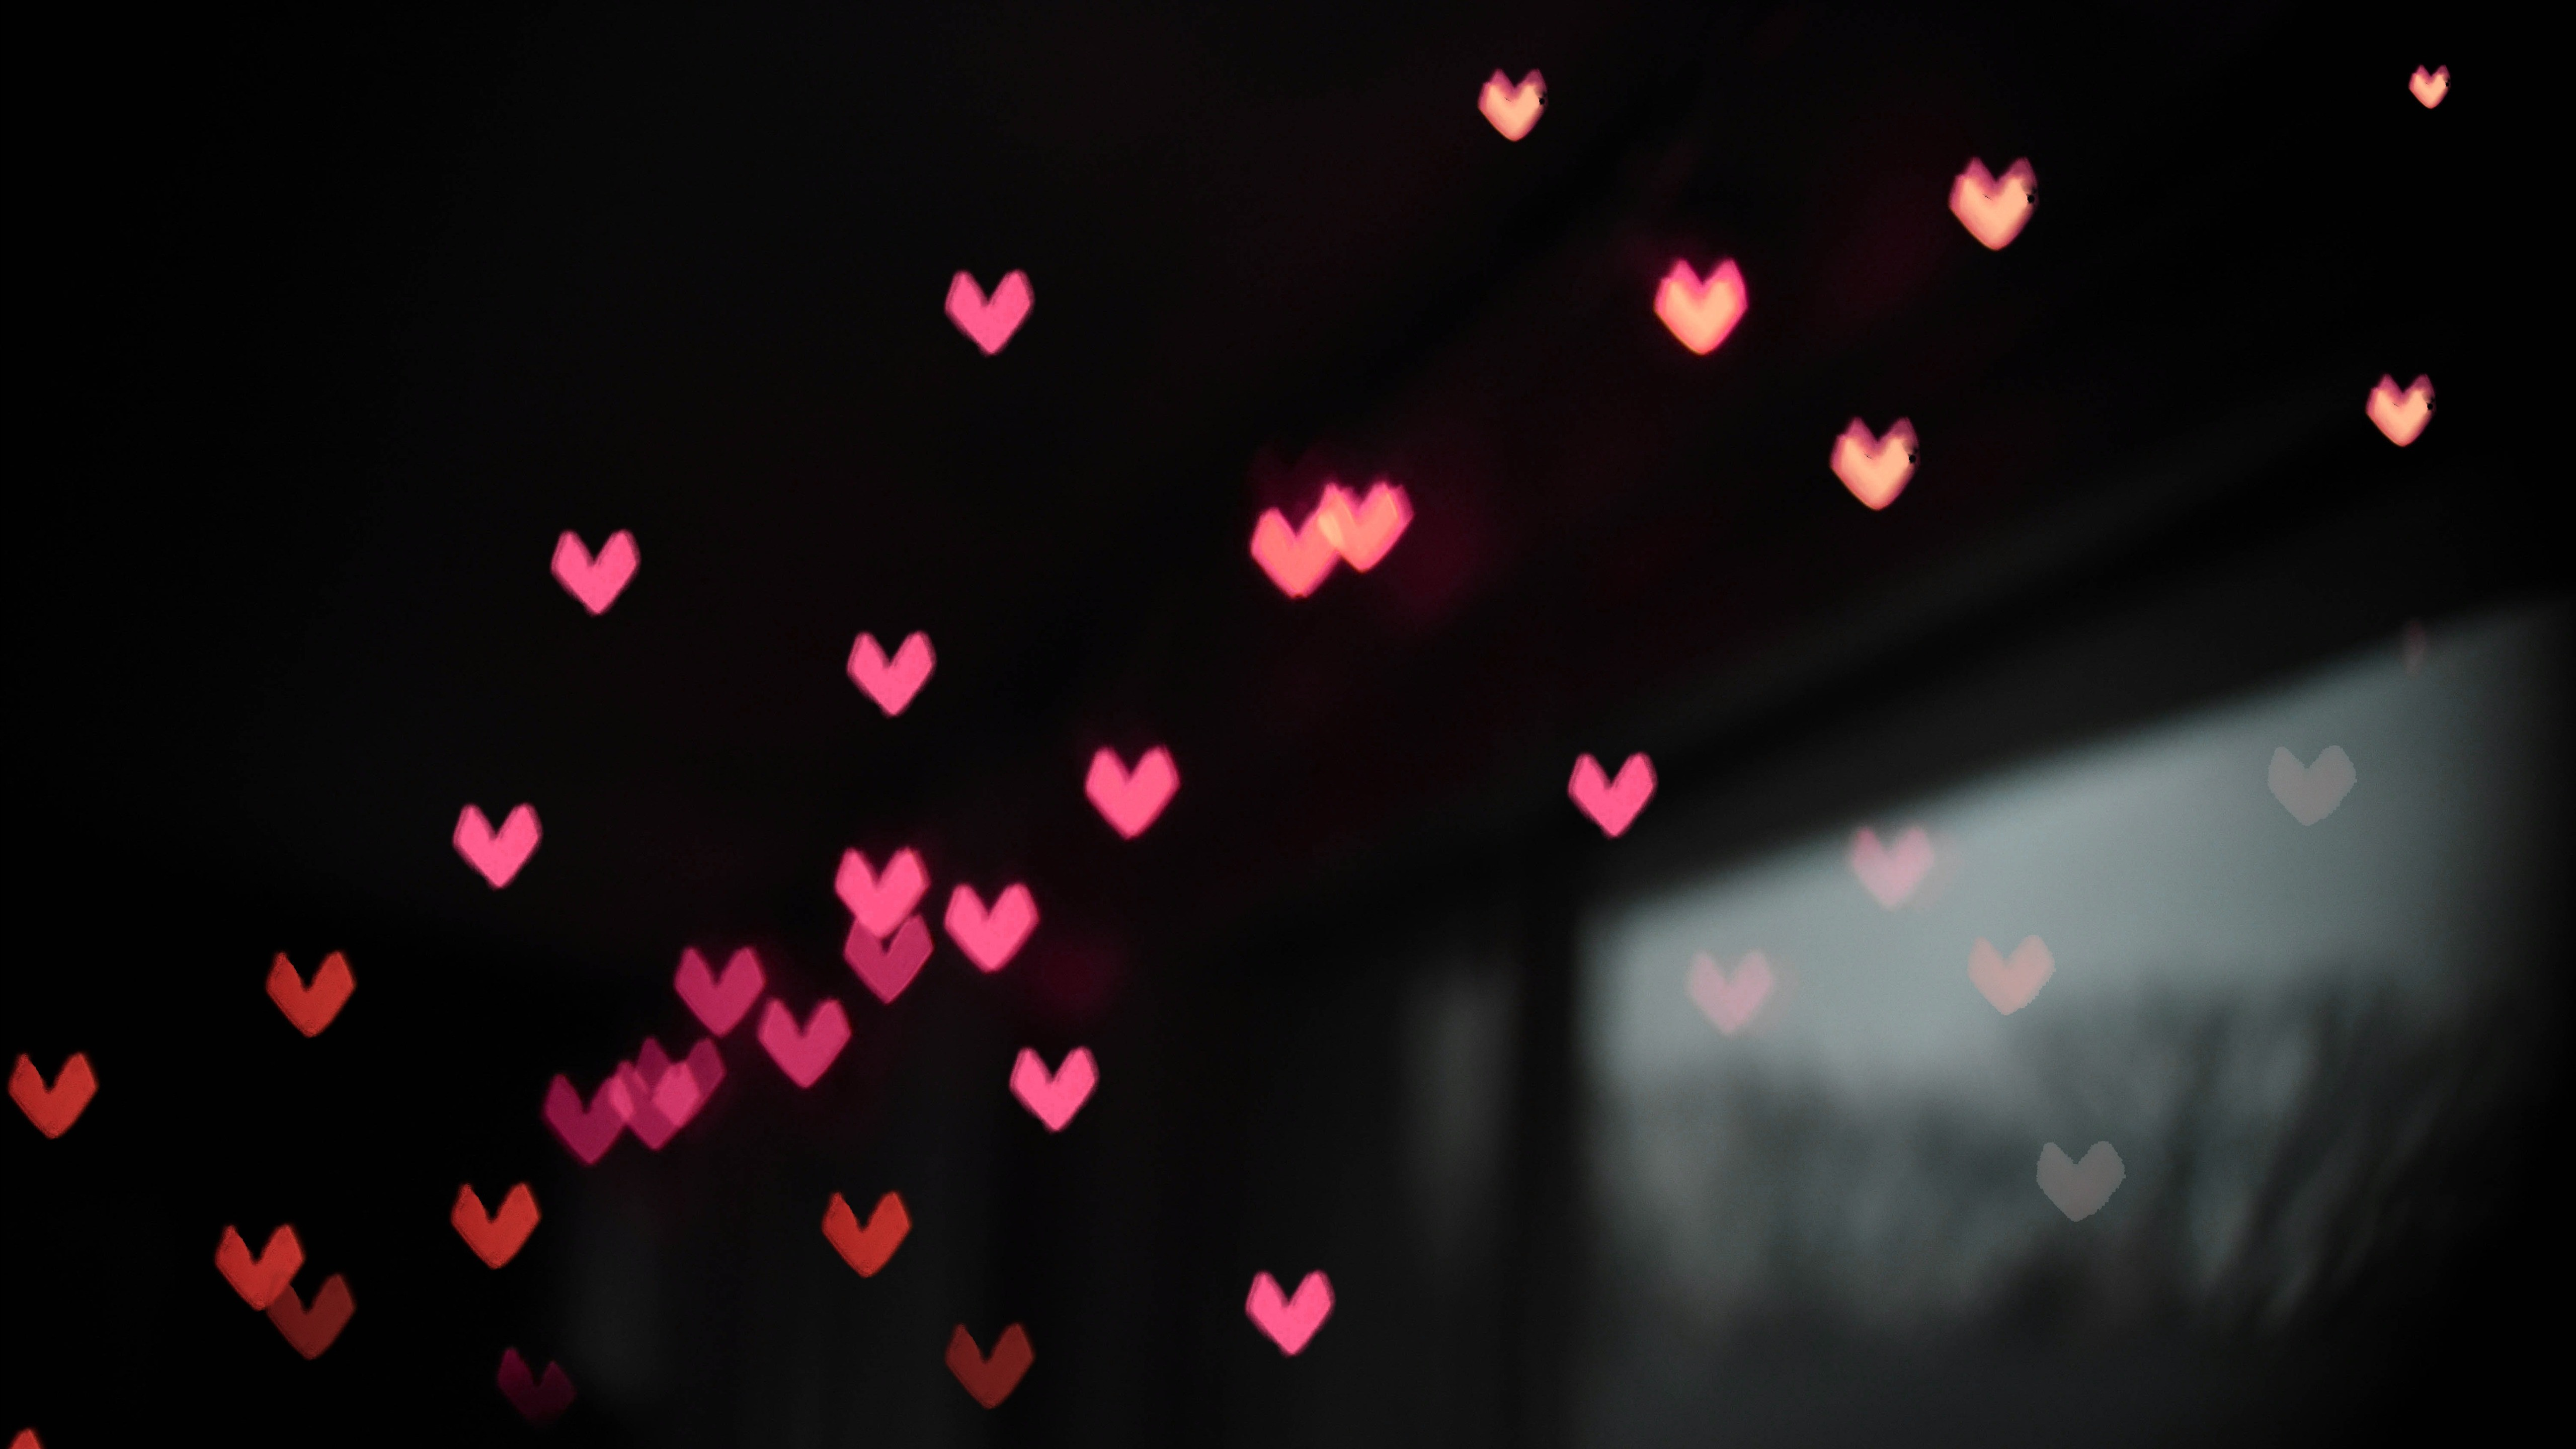 Small Pink Heart In Black Background 5k Abstract Wallpaper Black Wallpaper With Heart 2194948 Hd Wallpaper Backgrounds Download